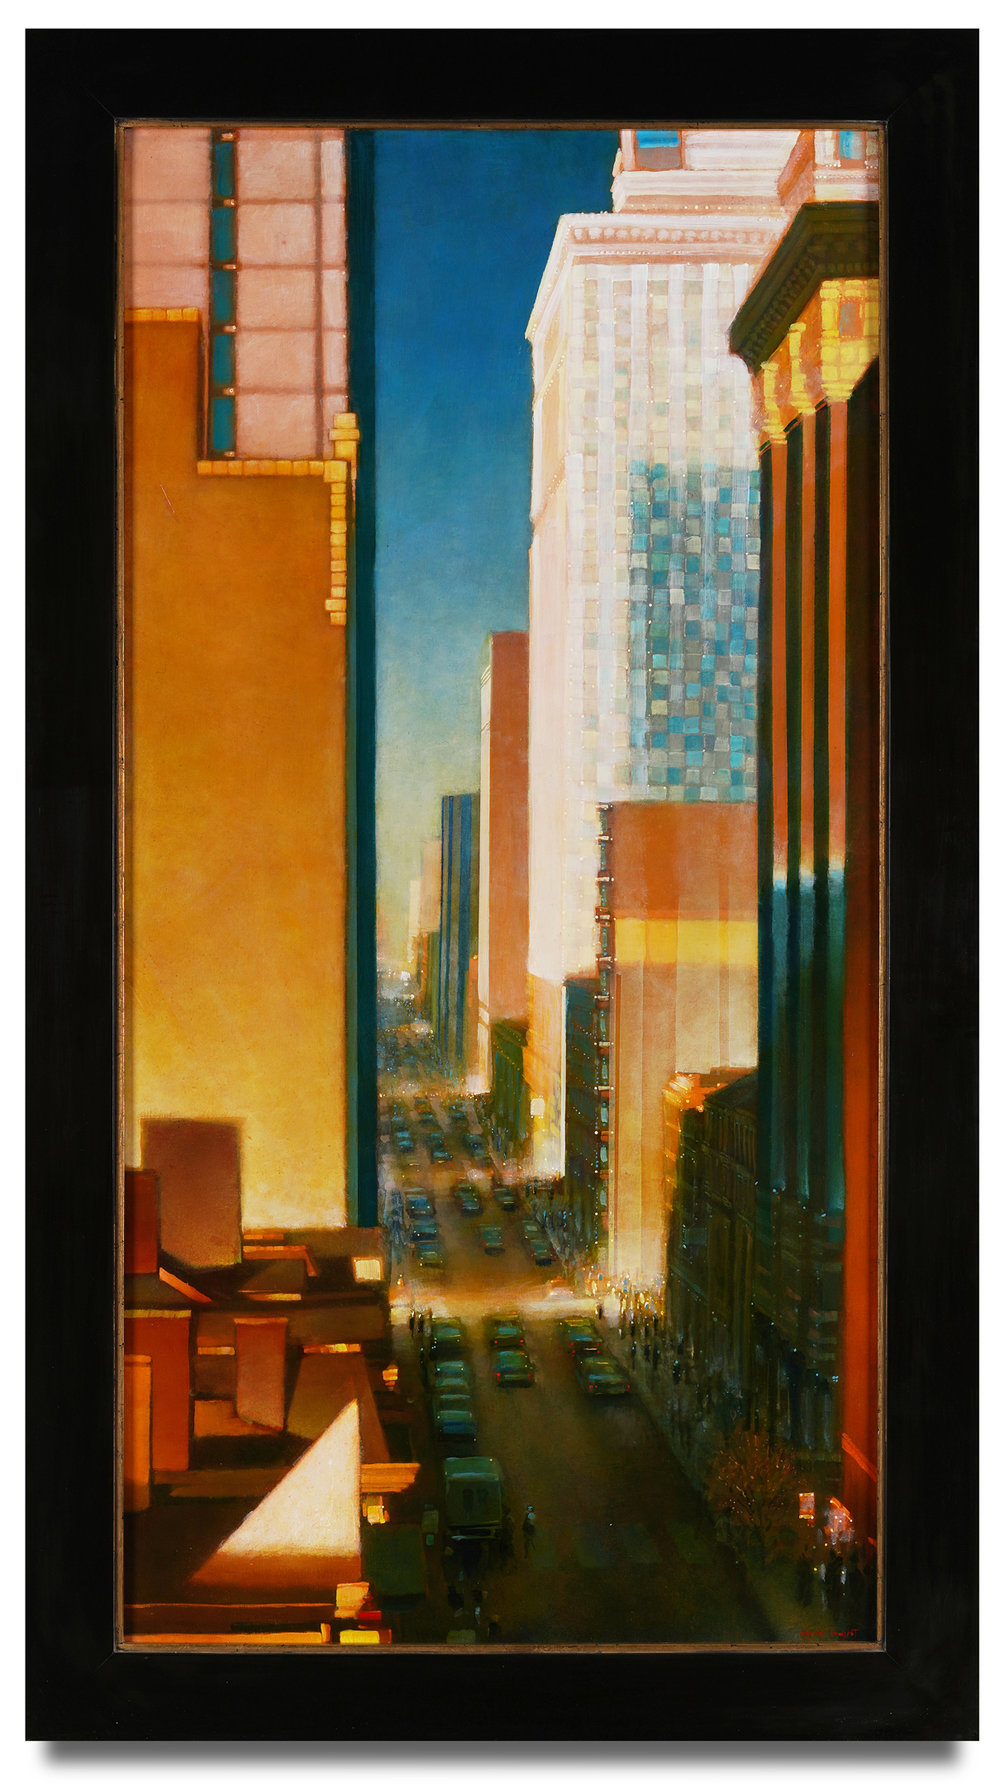 Mark Innerst,  View From A Hotel Window , 2018, oil on canvas, 48 x 24 inches; framed 54 1/4 x 30 1/4 inches